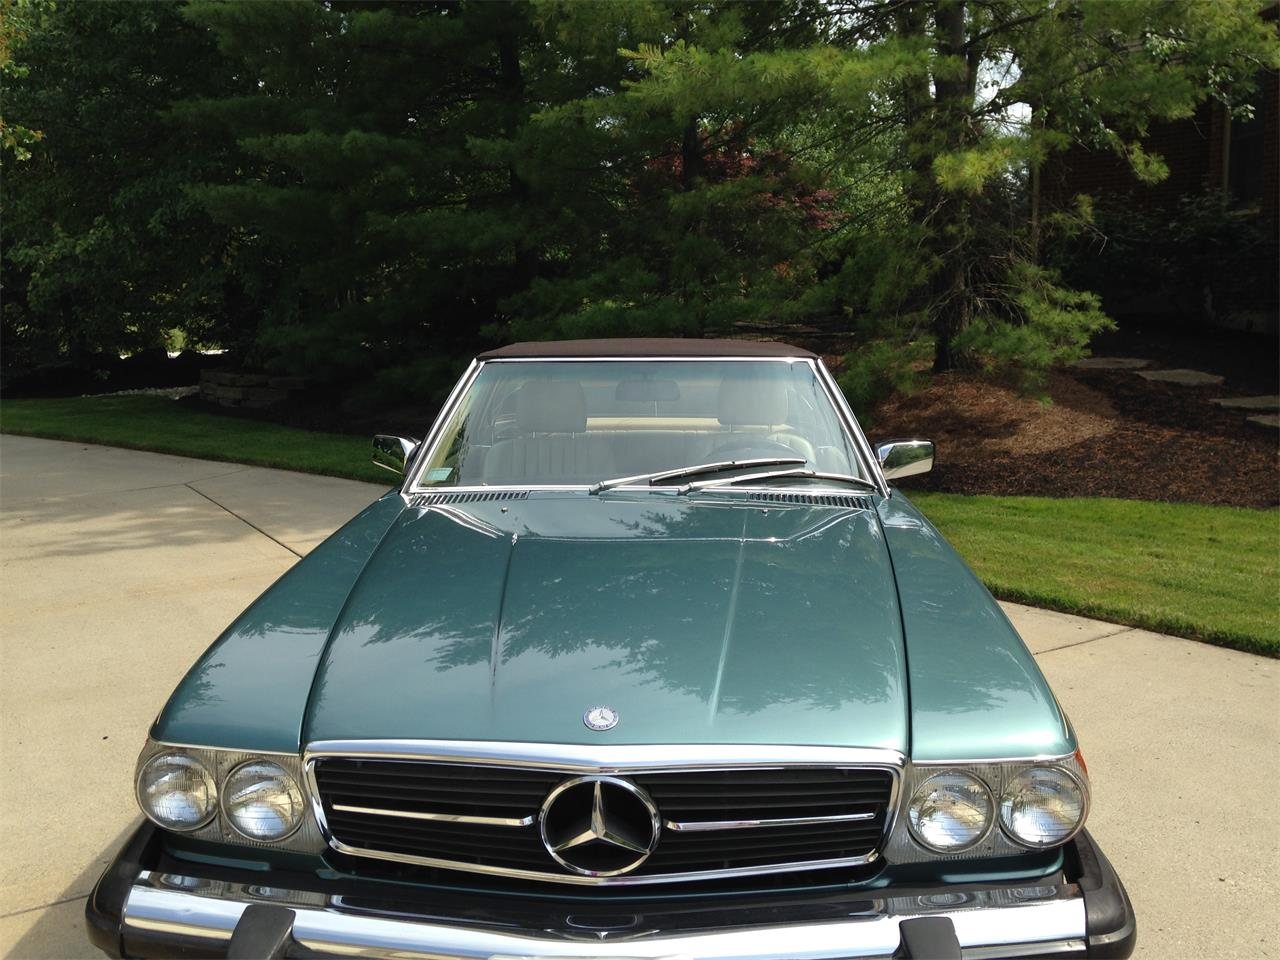 1989 Mercedes-Benz 560SL for sale in Mason, OH – photo 2